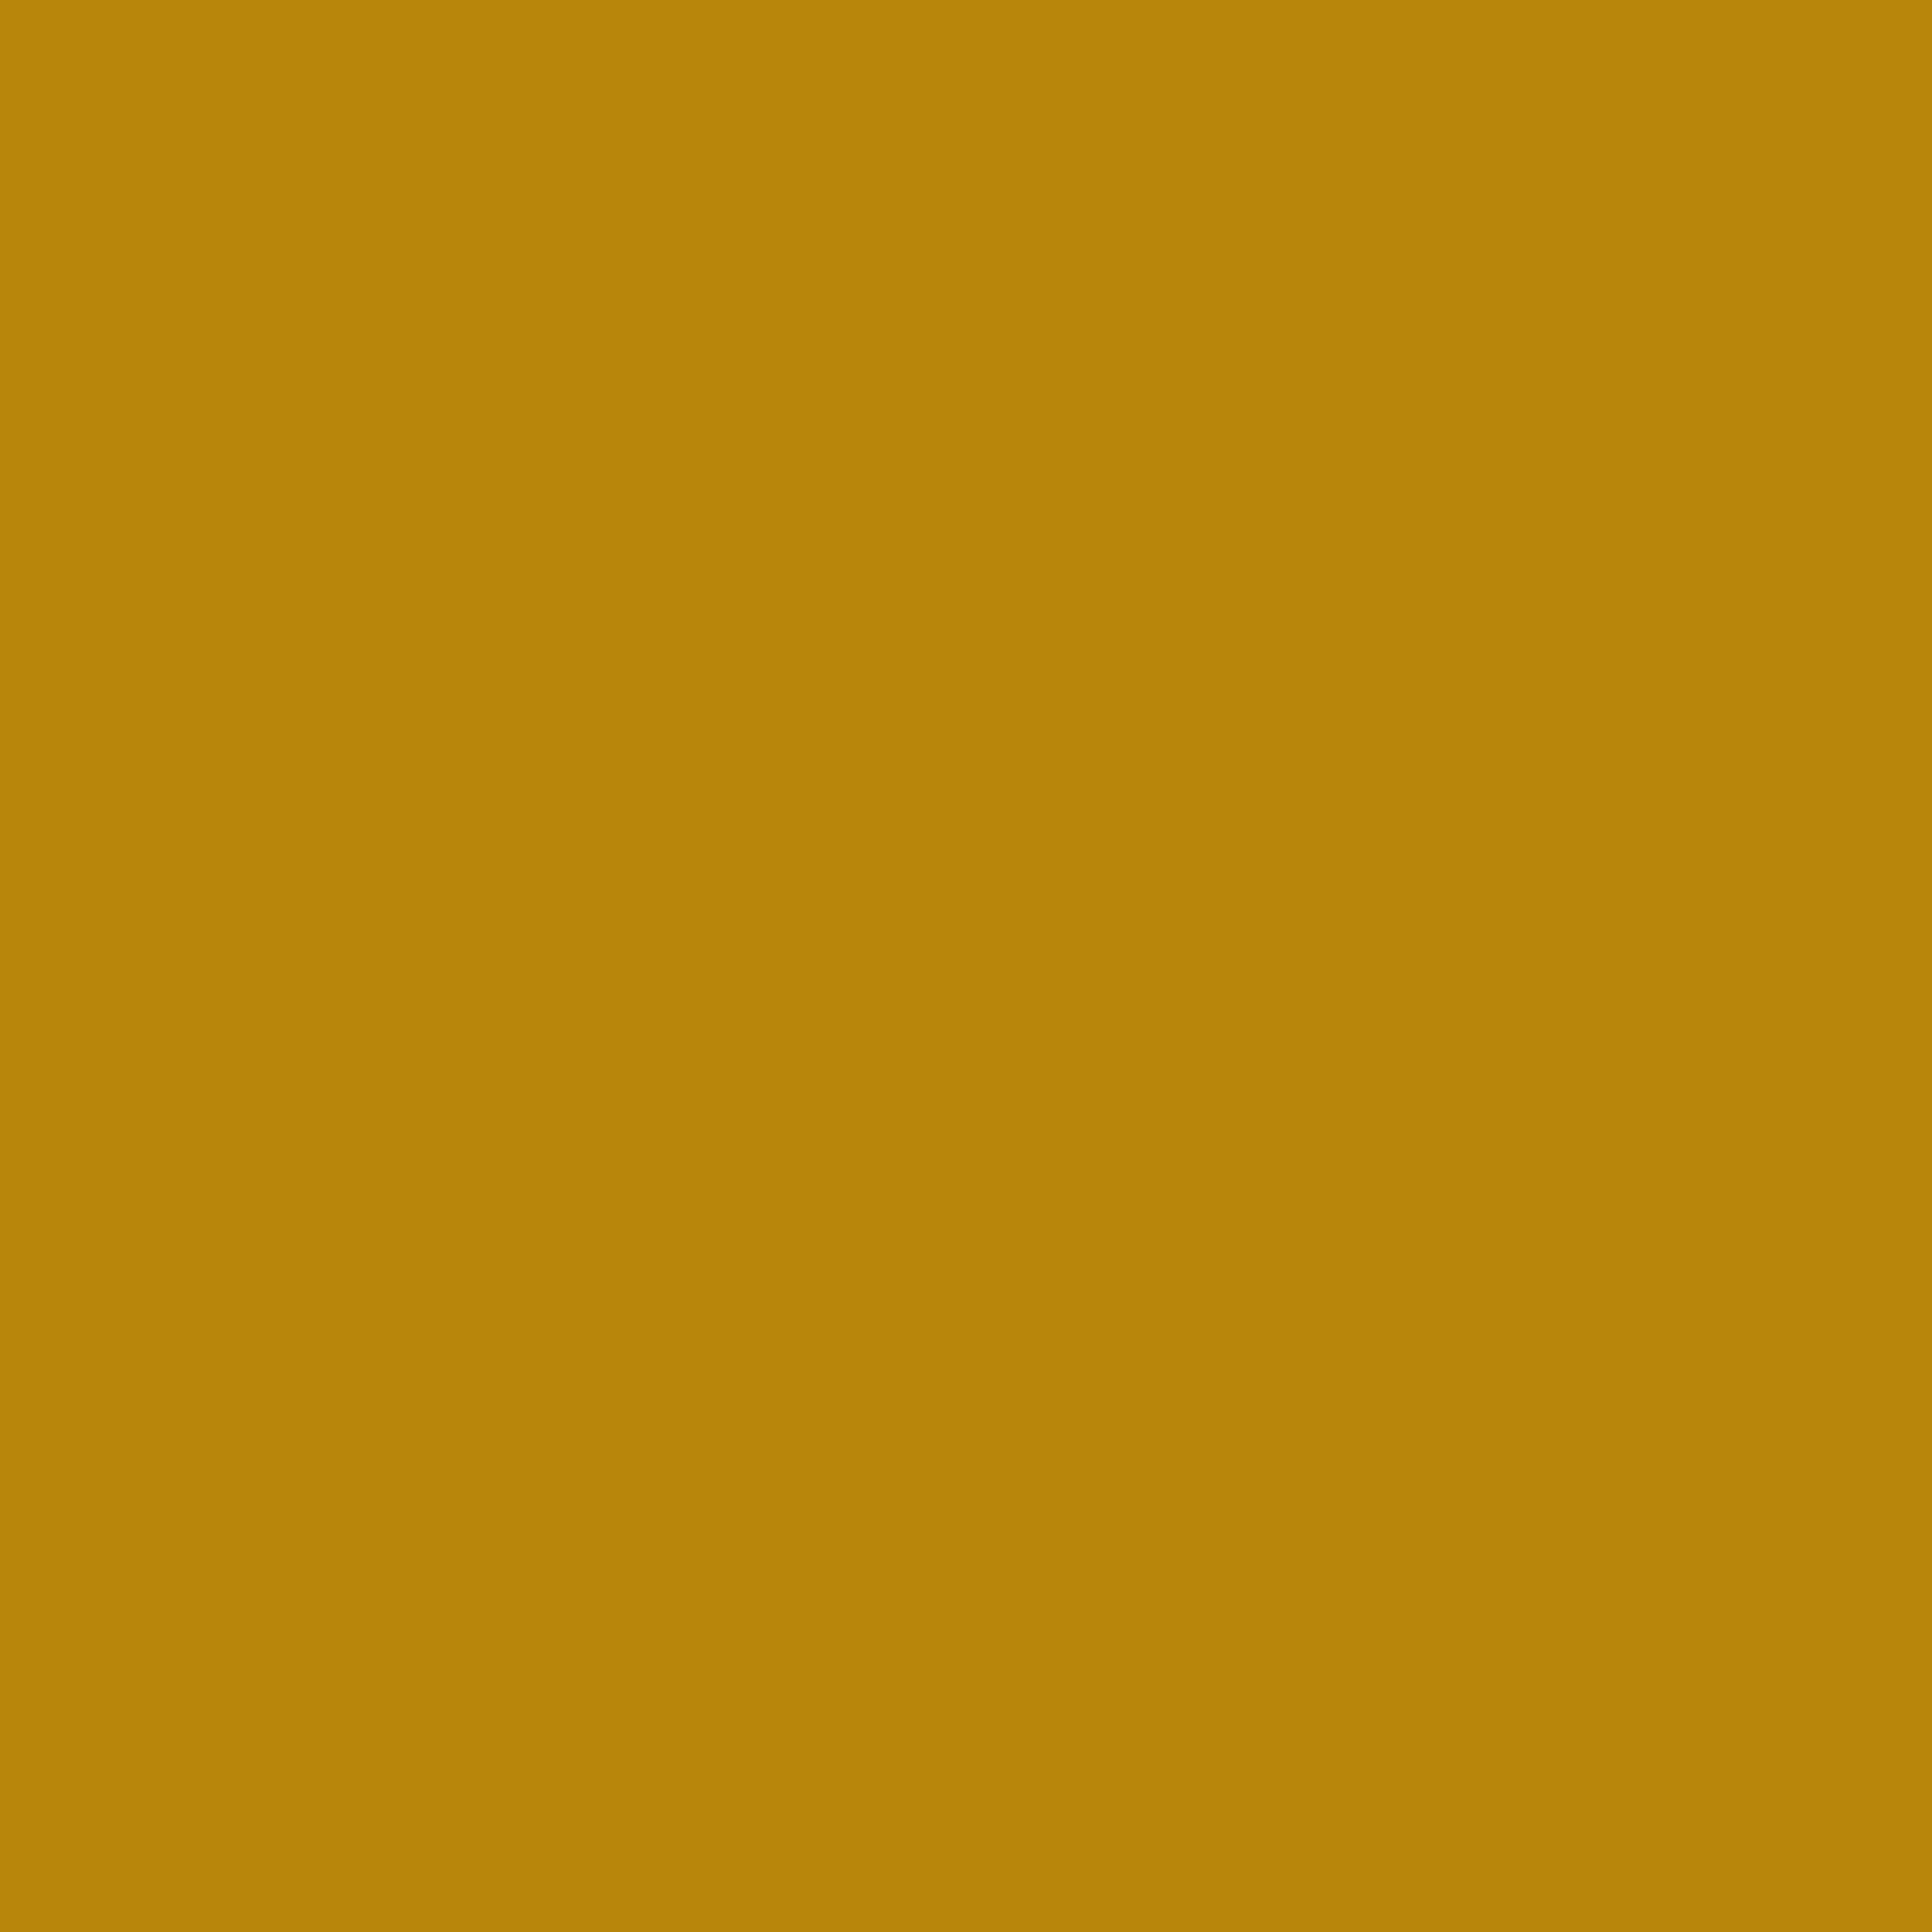 3600x3600 Dark Goldenrod Solid Color Background